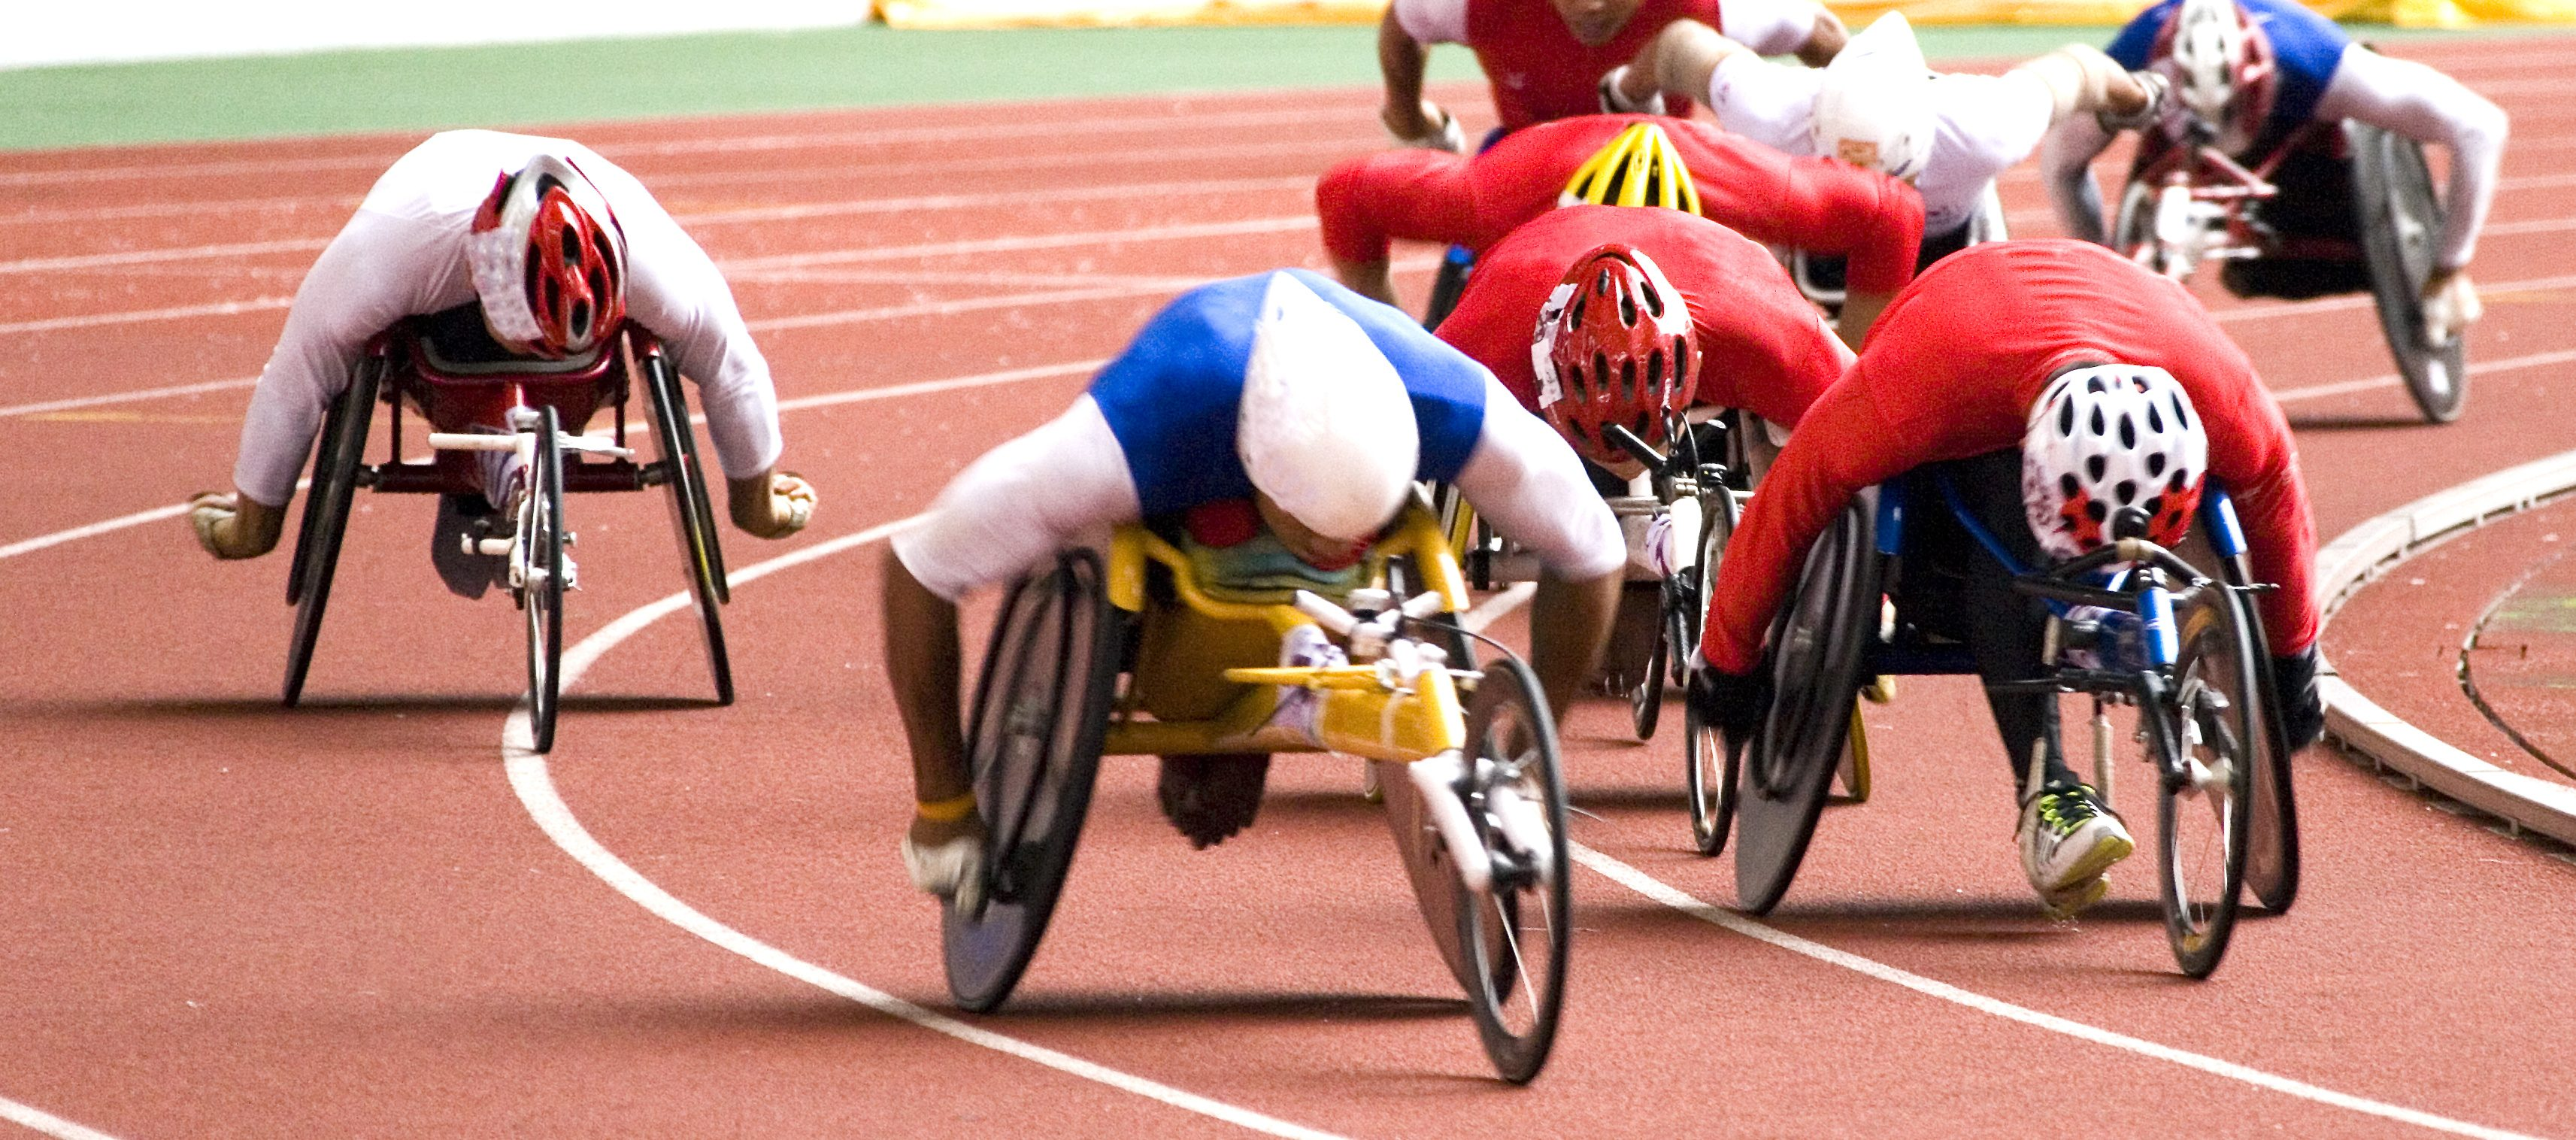 Athletes competing in a wheelchair racing event